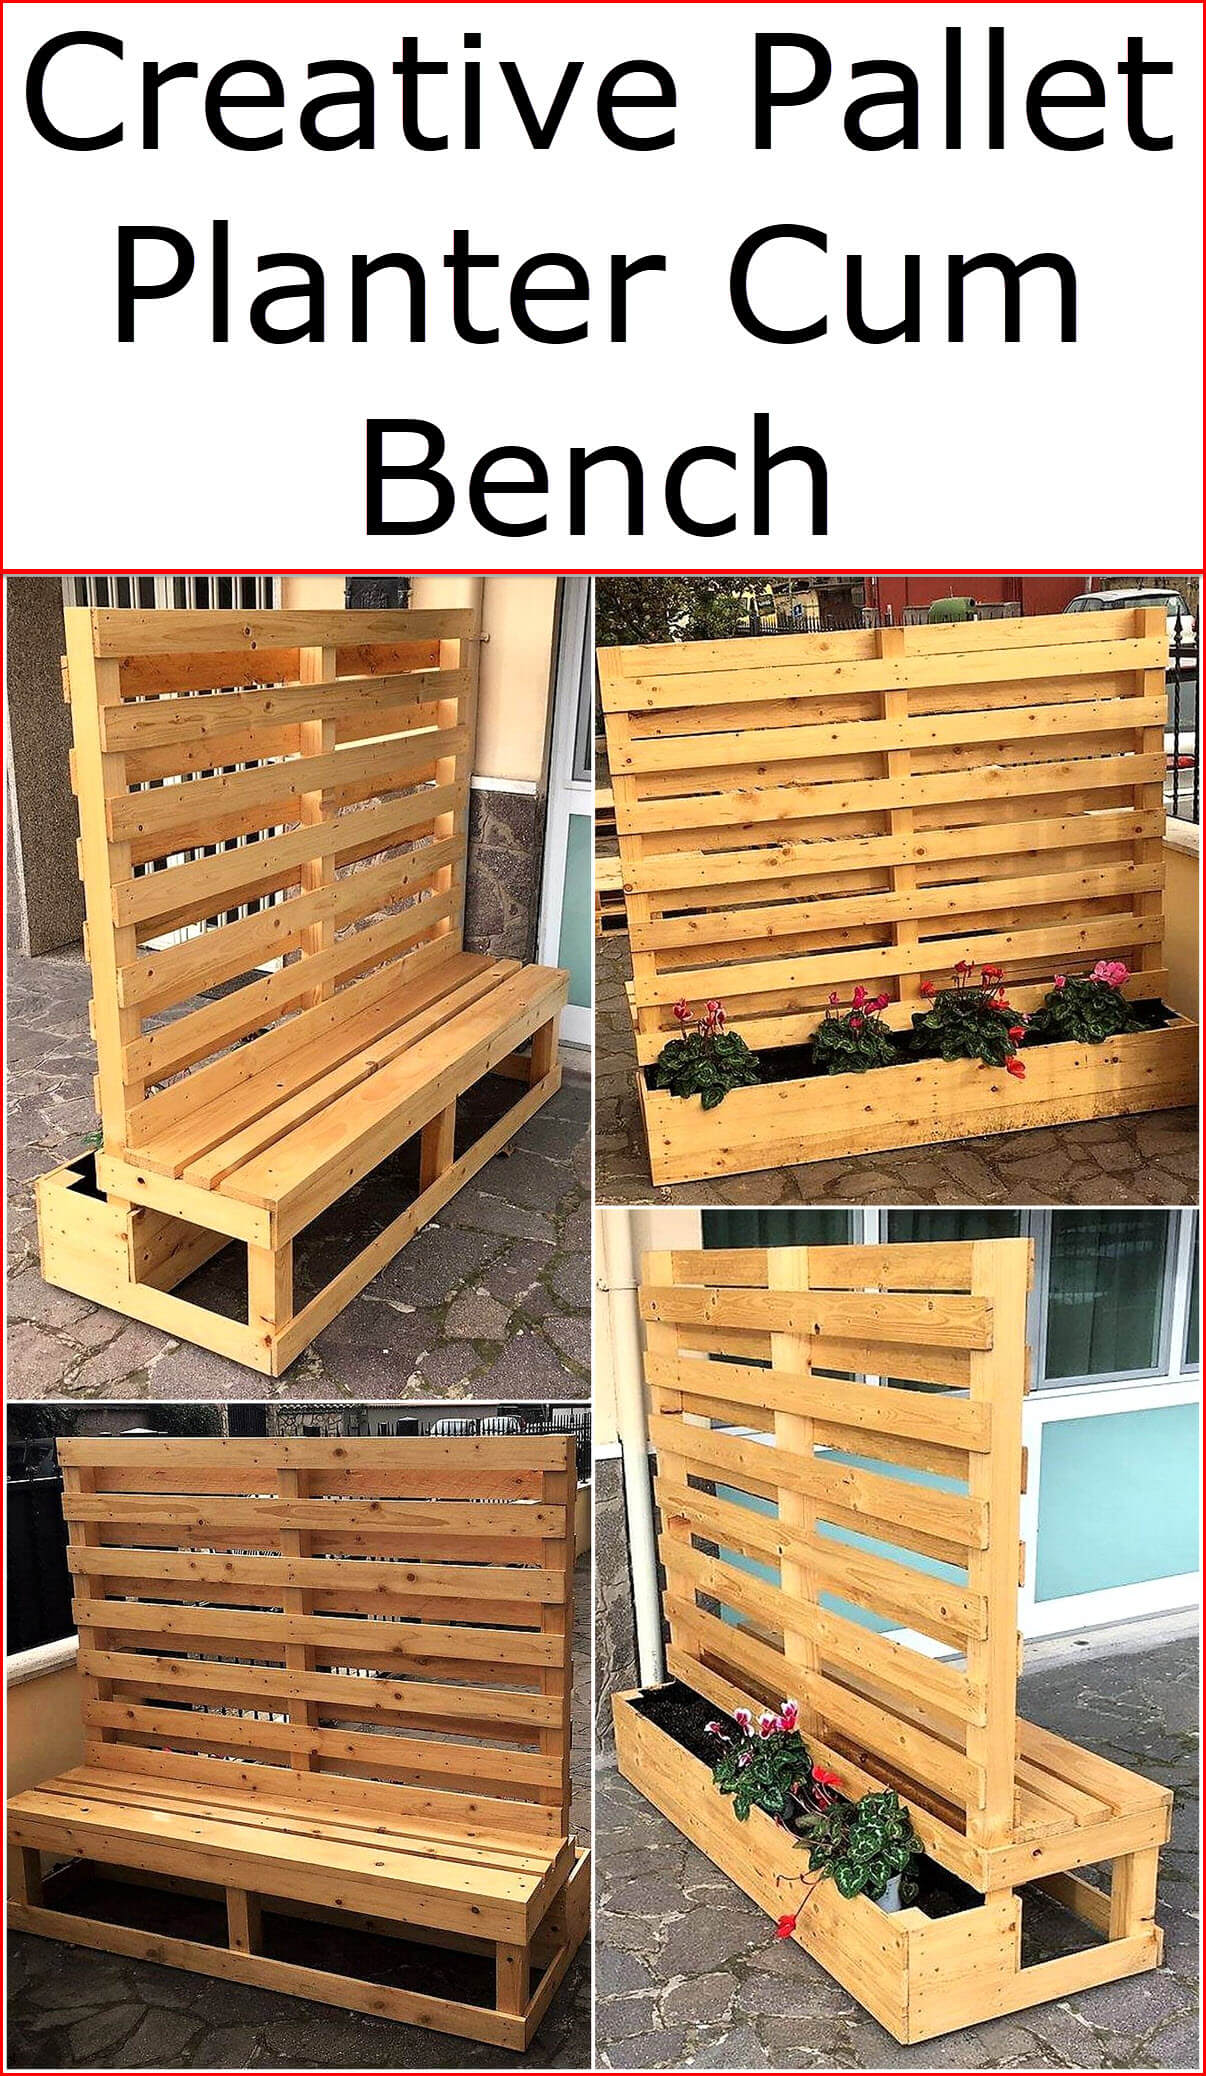 Creative Pallet Planter Cum Bench